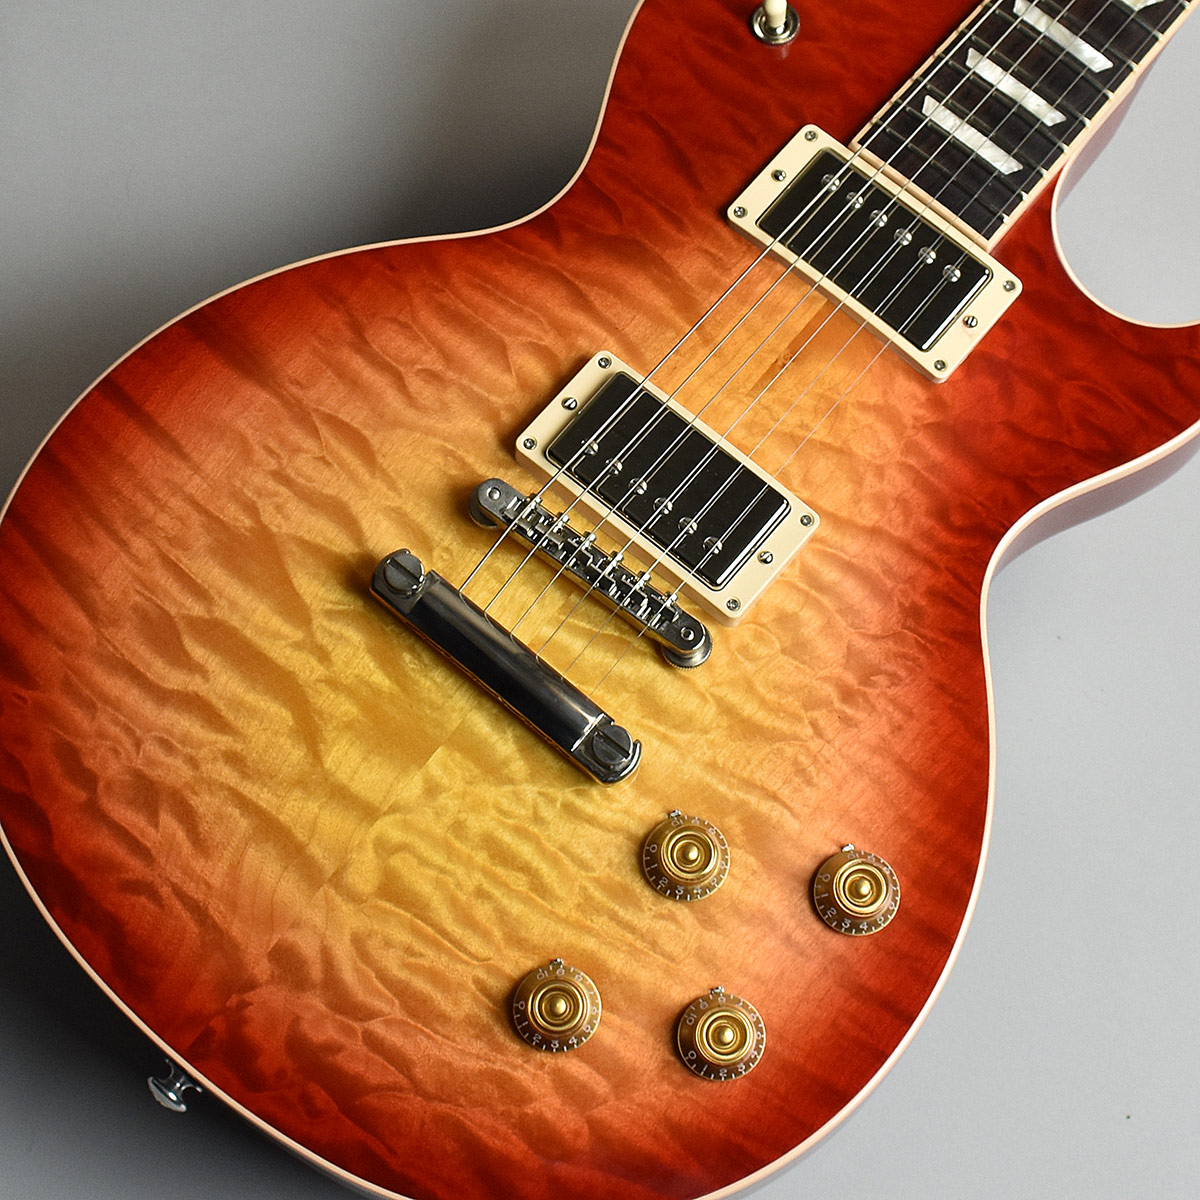 Gibson Les Paul Traditional Plus Quilt 2017 Limited Heritage Cherry Sunburst S/N:170060430 【ギブソン】【未展示品】